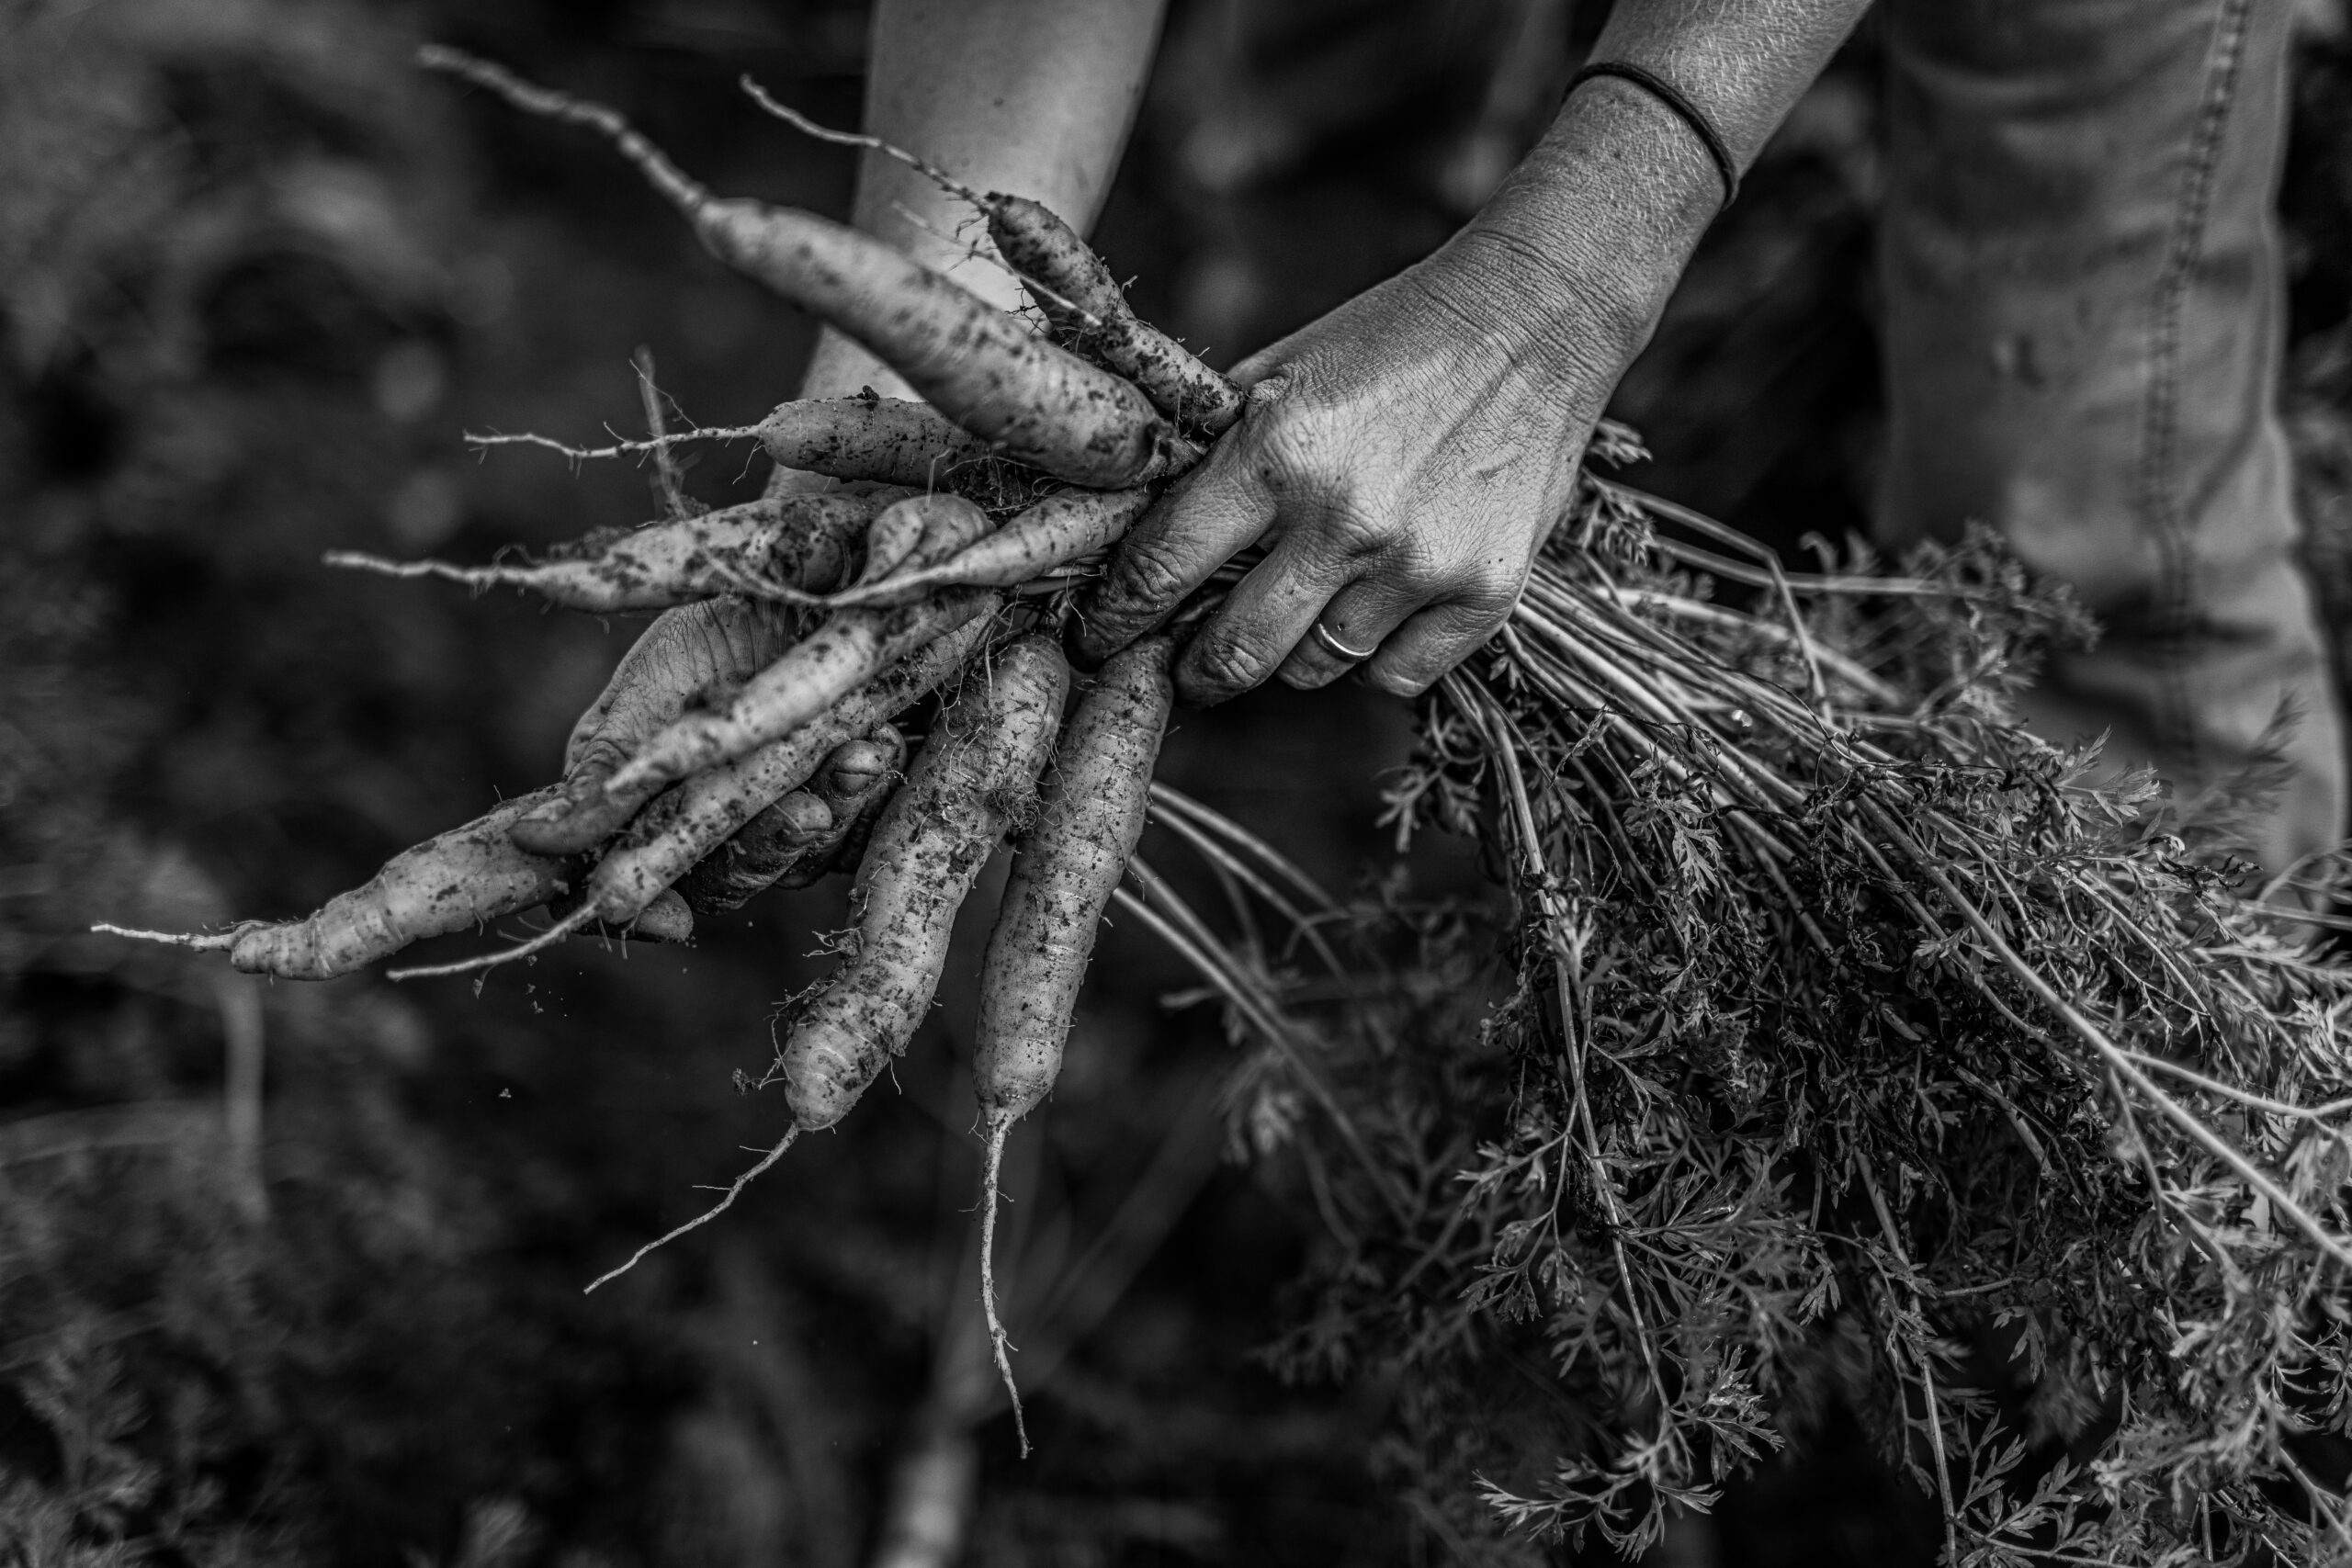 Black and White photo of hands pulling carrots from soil